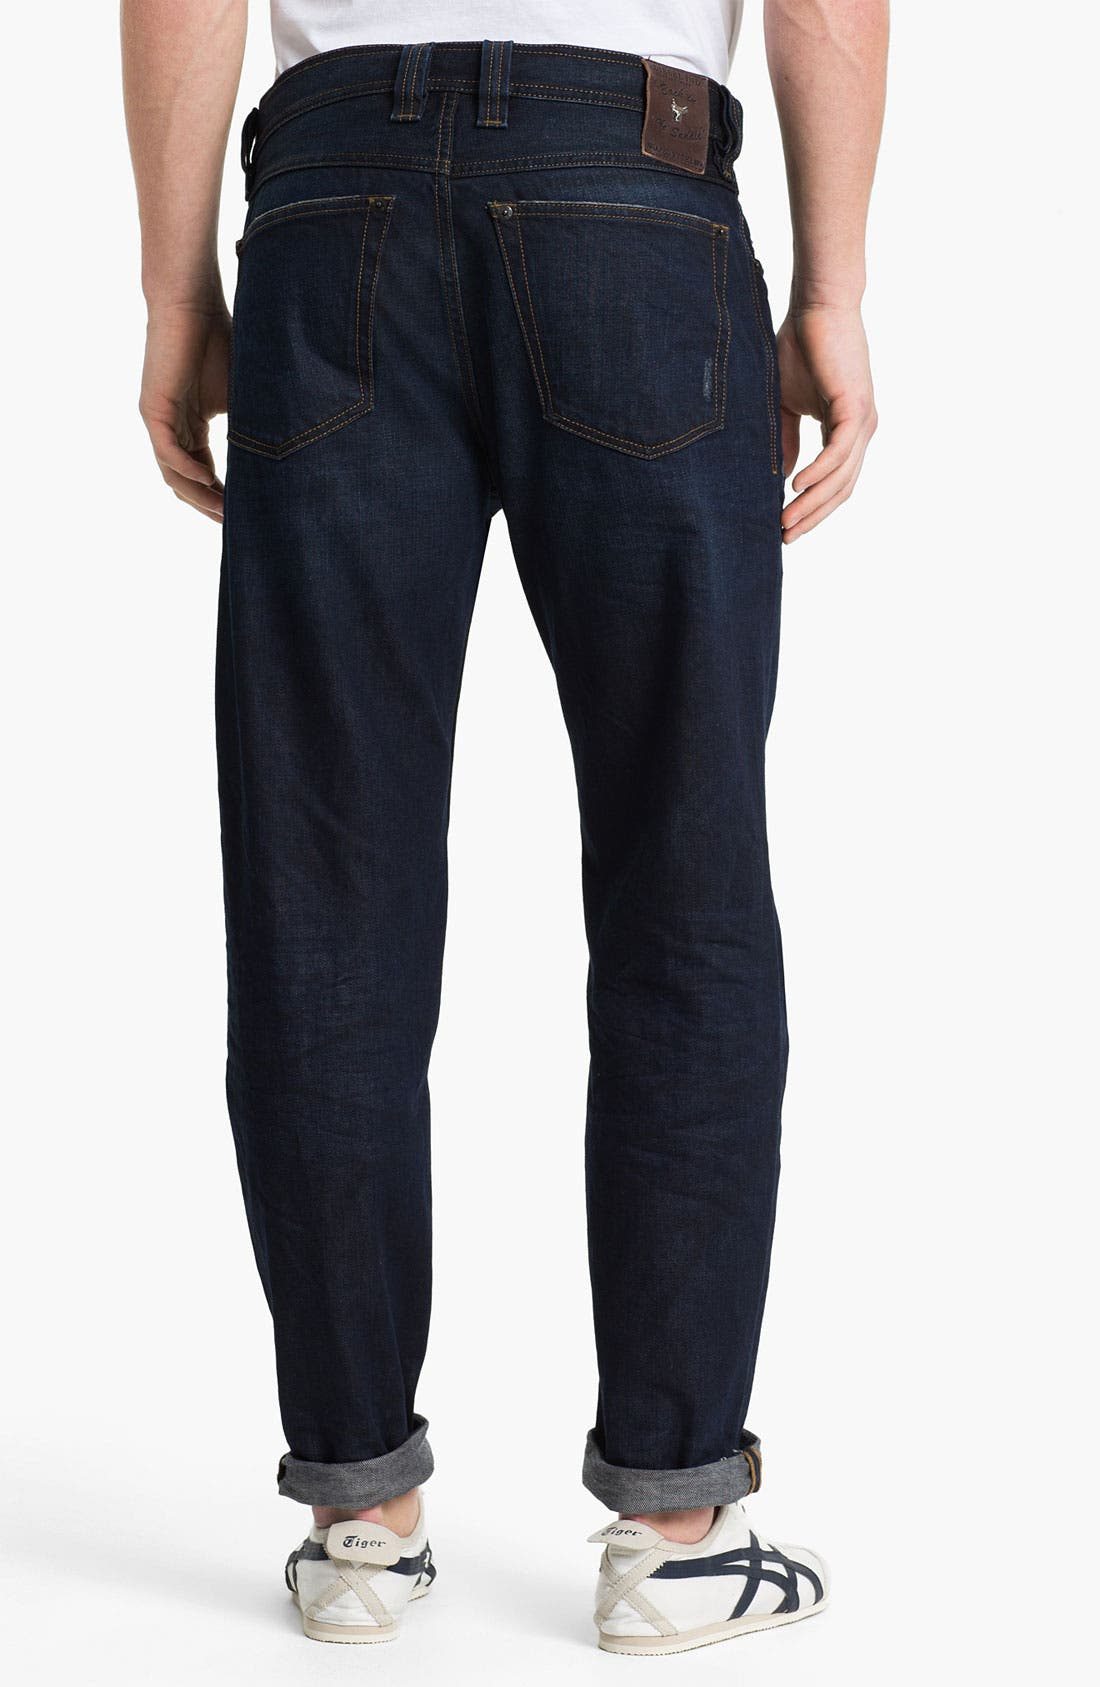 'Back in the Saddle' Relaxed Tapered Leg Jeans,                         Main,                         color, 0806X